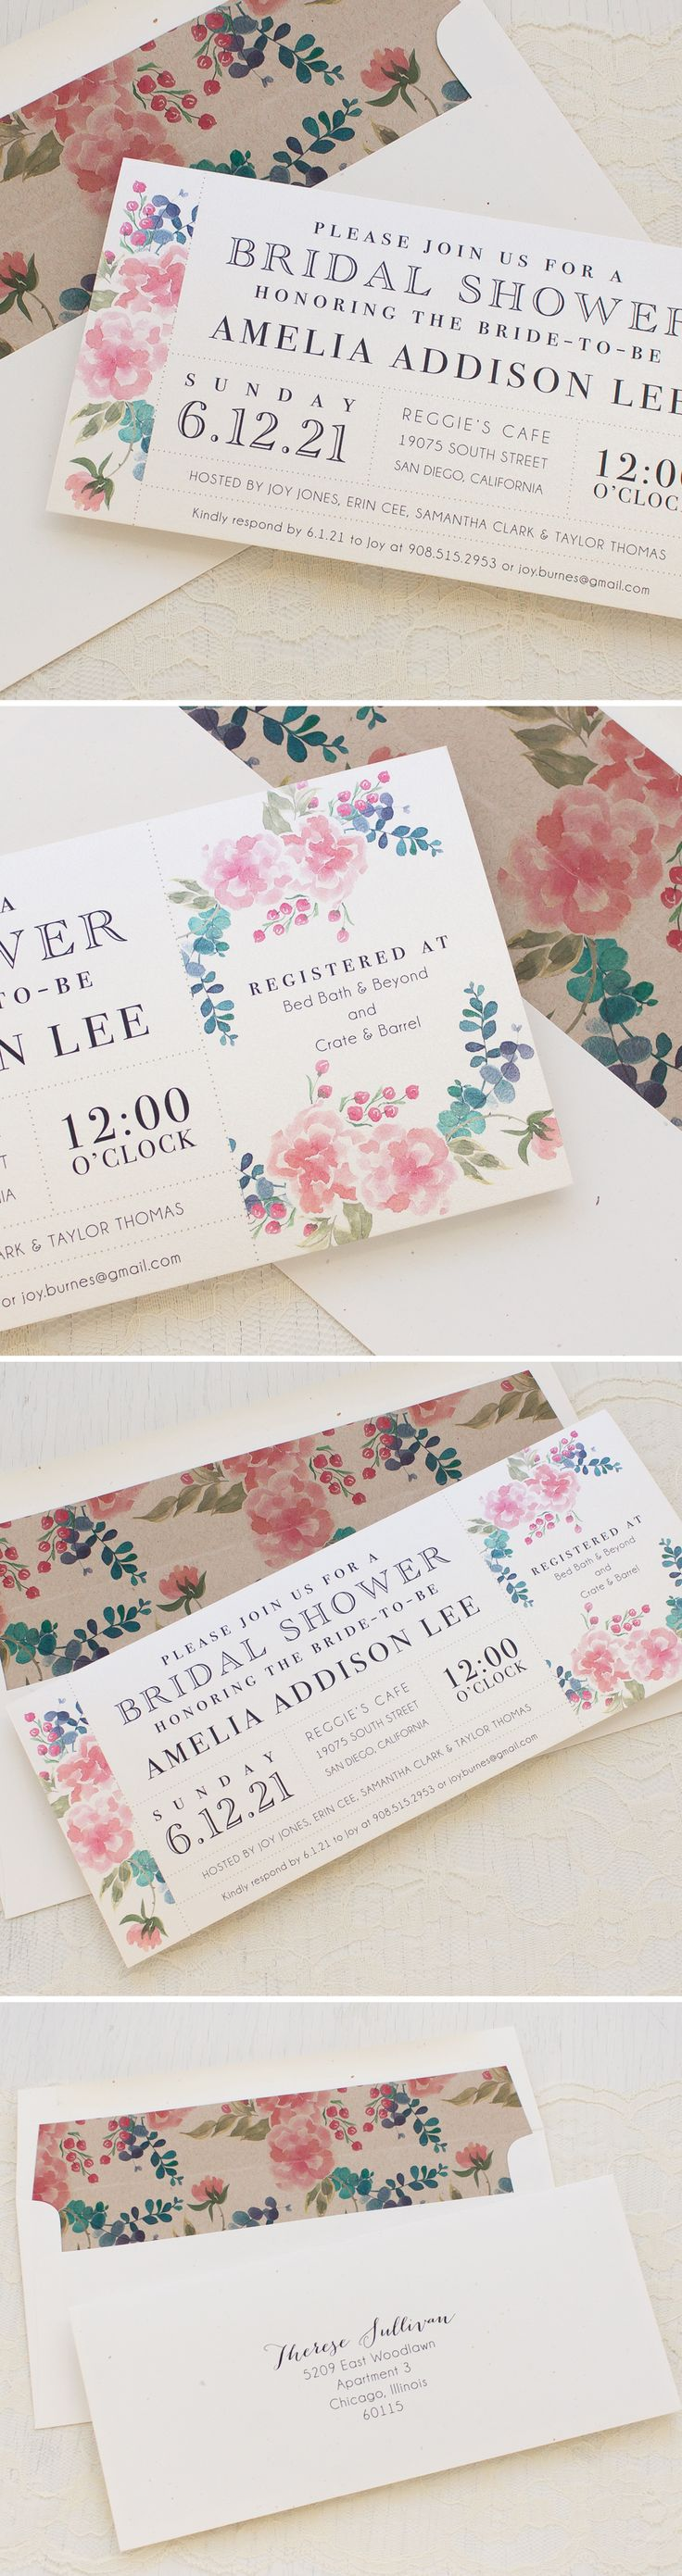 how early should you send out wedding shower invitations%0A Spring Floral Bridal Shower Invites with matching envelope liners